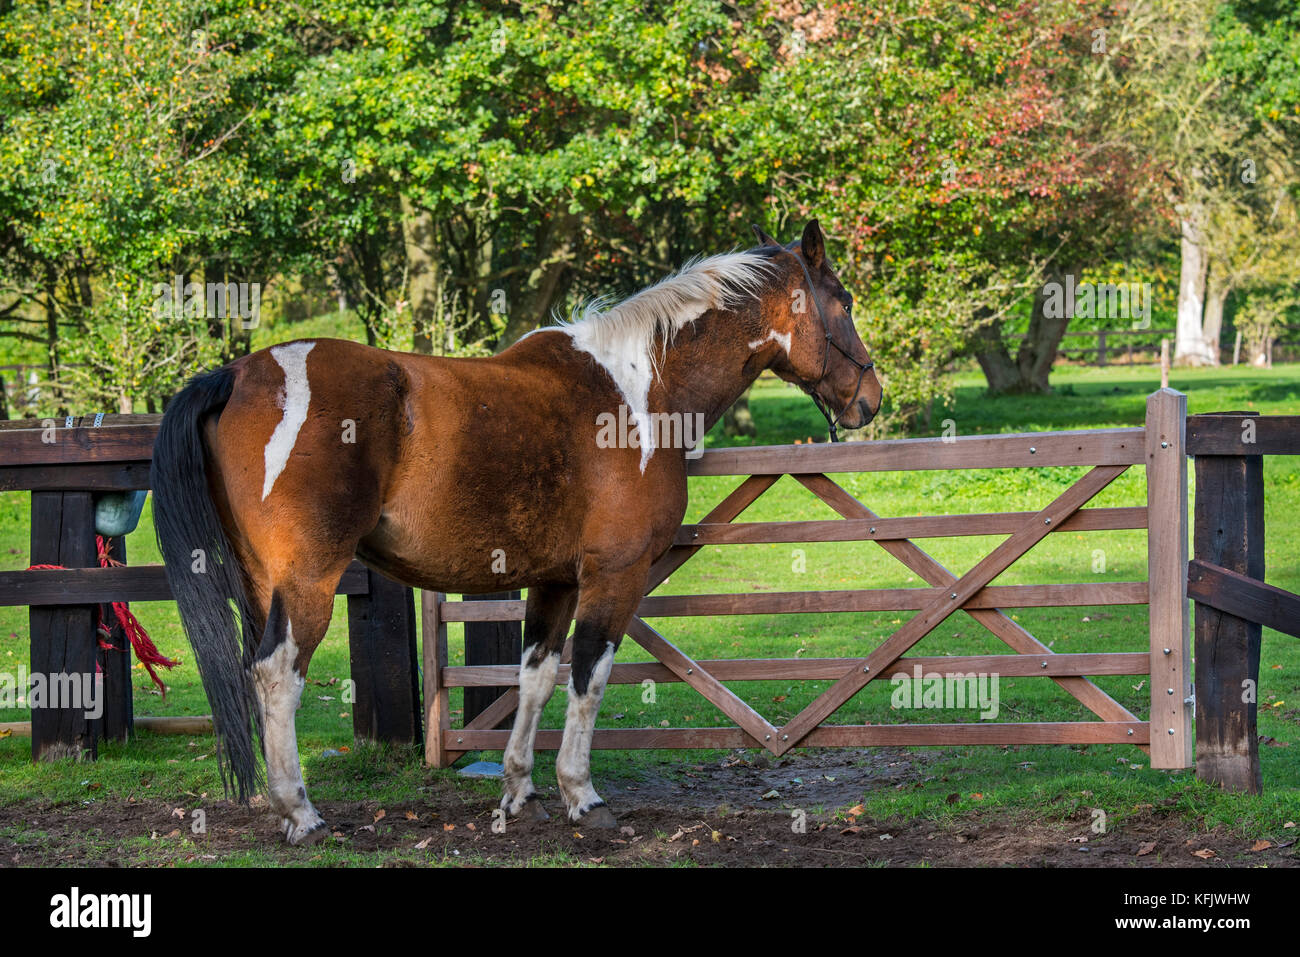 Pinto horse / Quarter Horse stallion outside in field within wooden enclosure - Stock Image